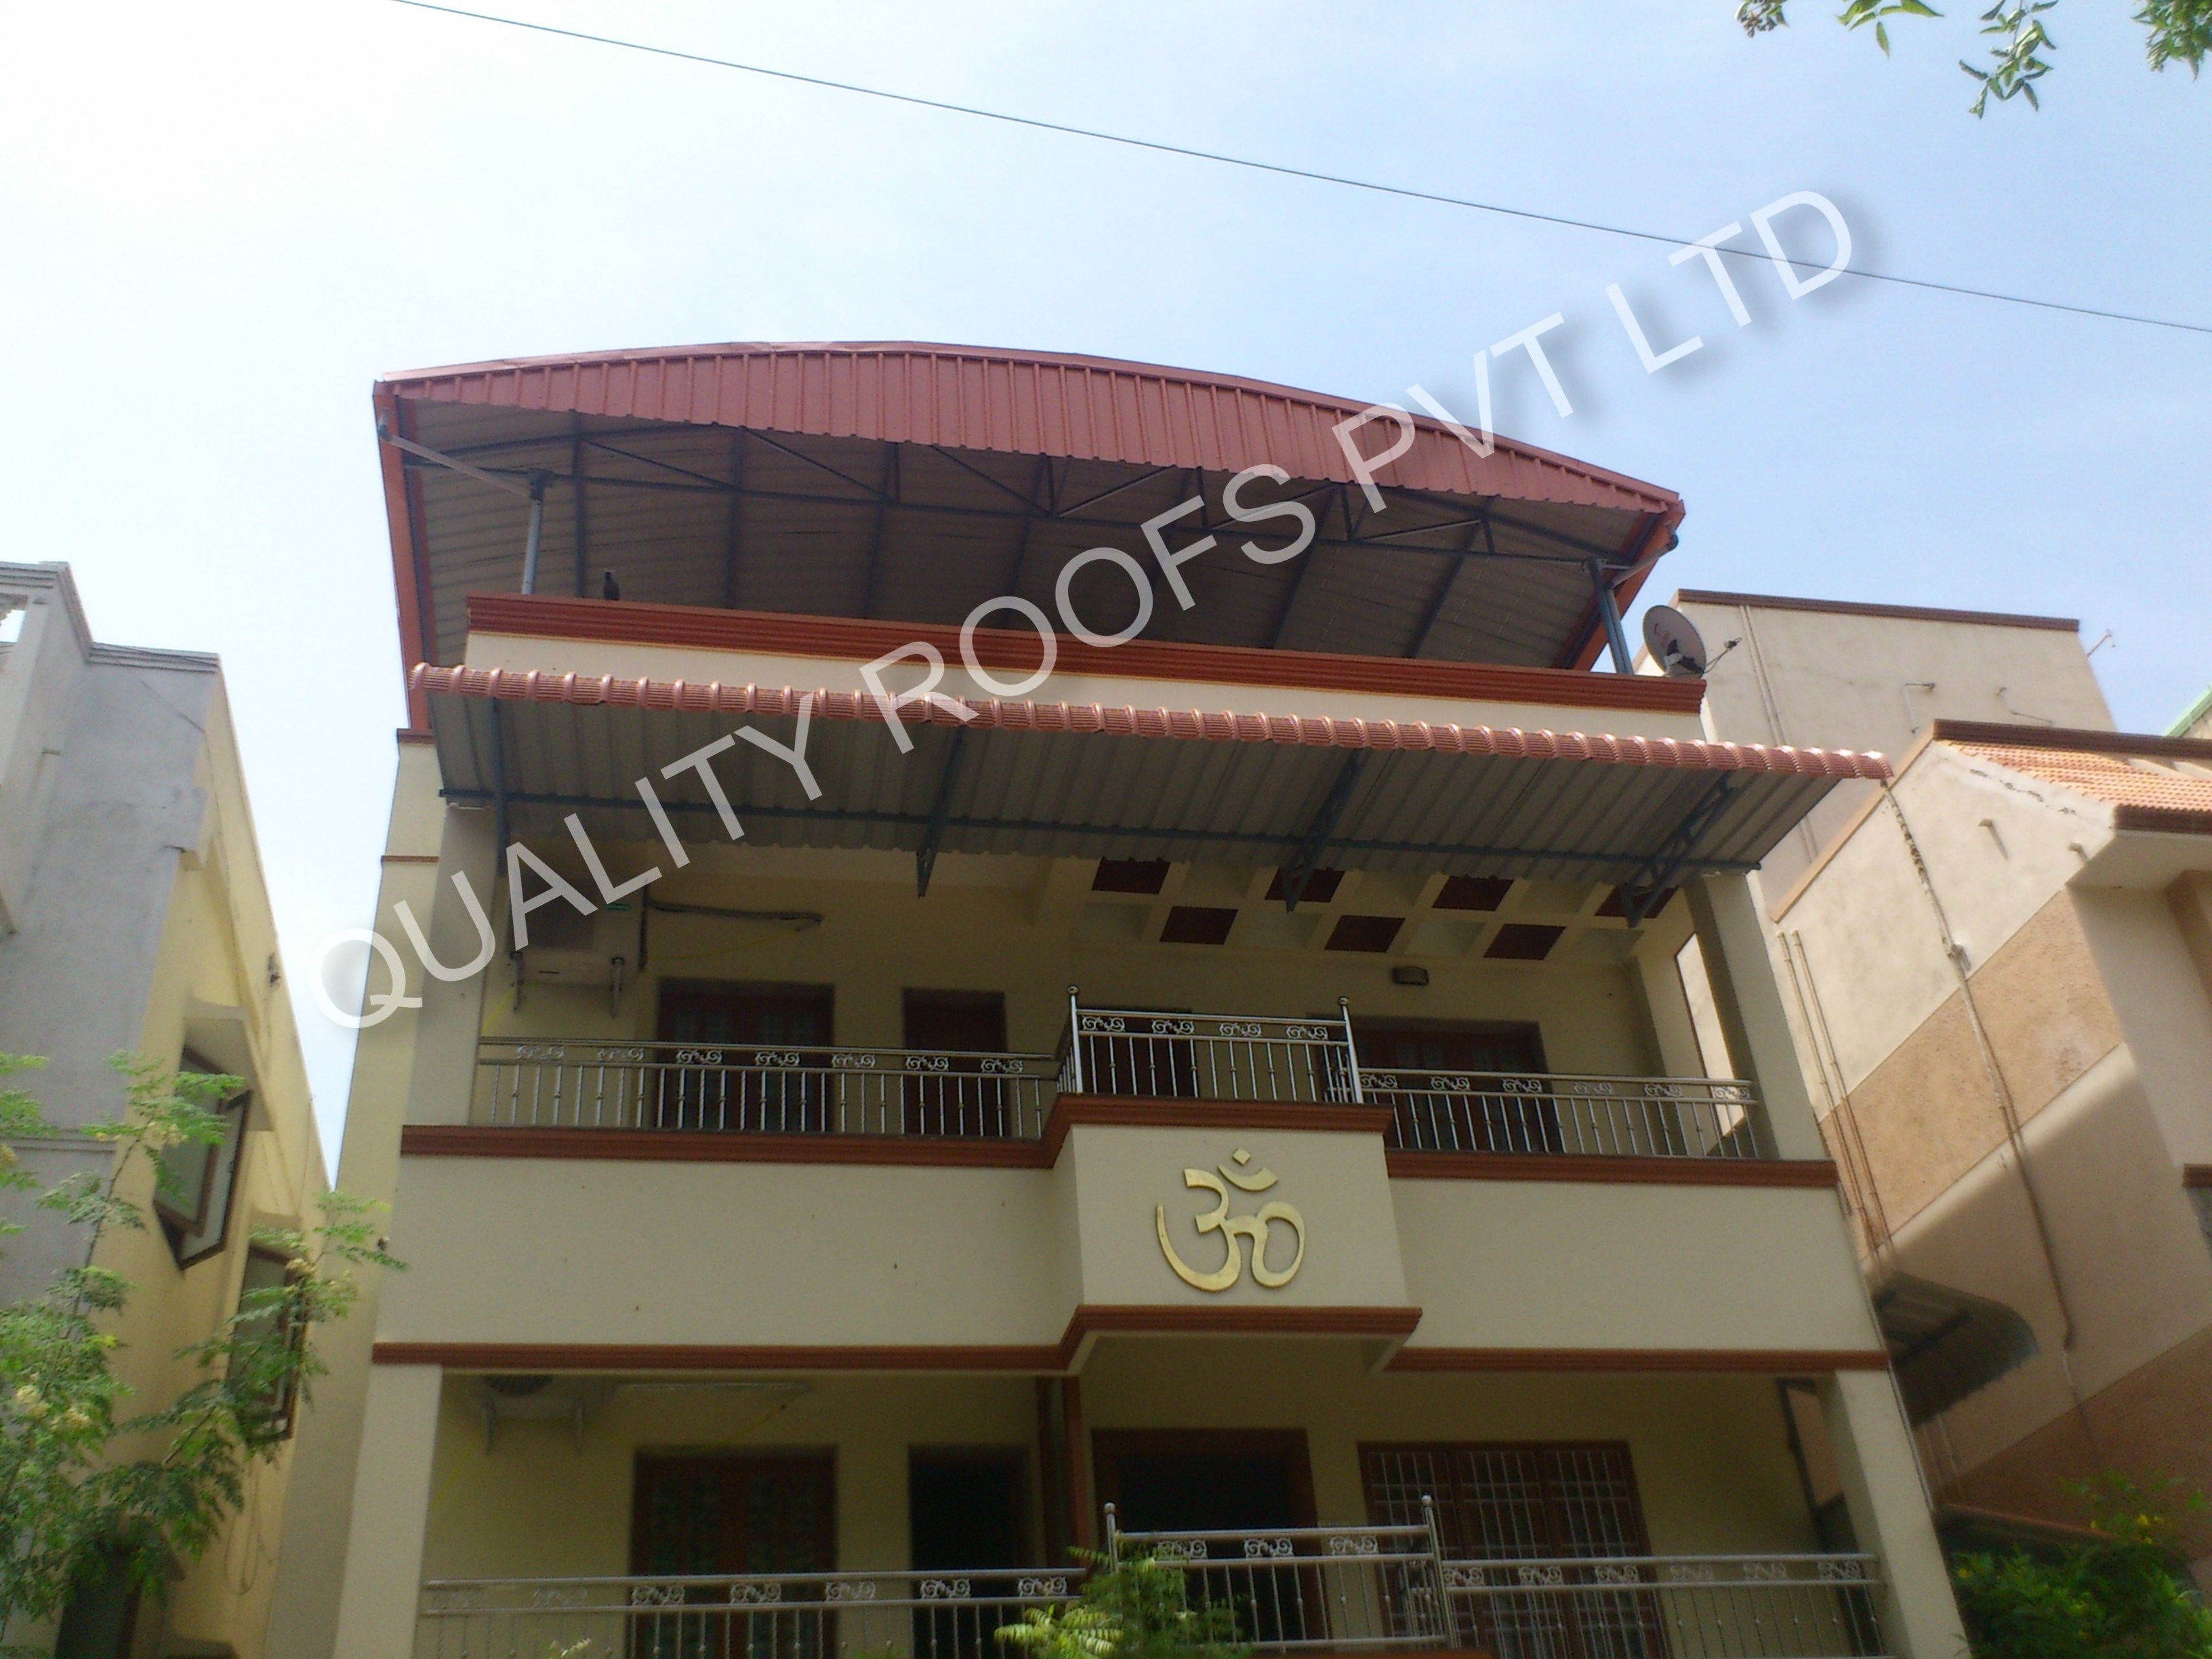 Terrace Roofing Contractors In Chennai | Quality Roofs Pvt Ltd | Terrace Roofing Contractor In Chennai,Industrial Roofing In Chennai,Roofing Conractors In Chennai,Terrace Shed work In chennai,Terrace Shed Contractors In Chennai - GL57389